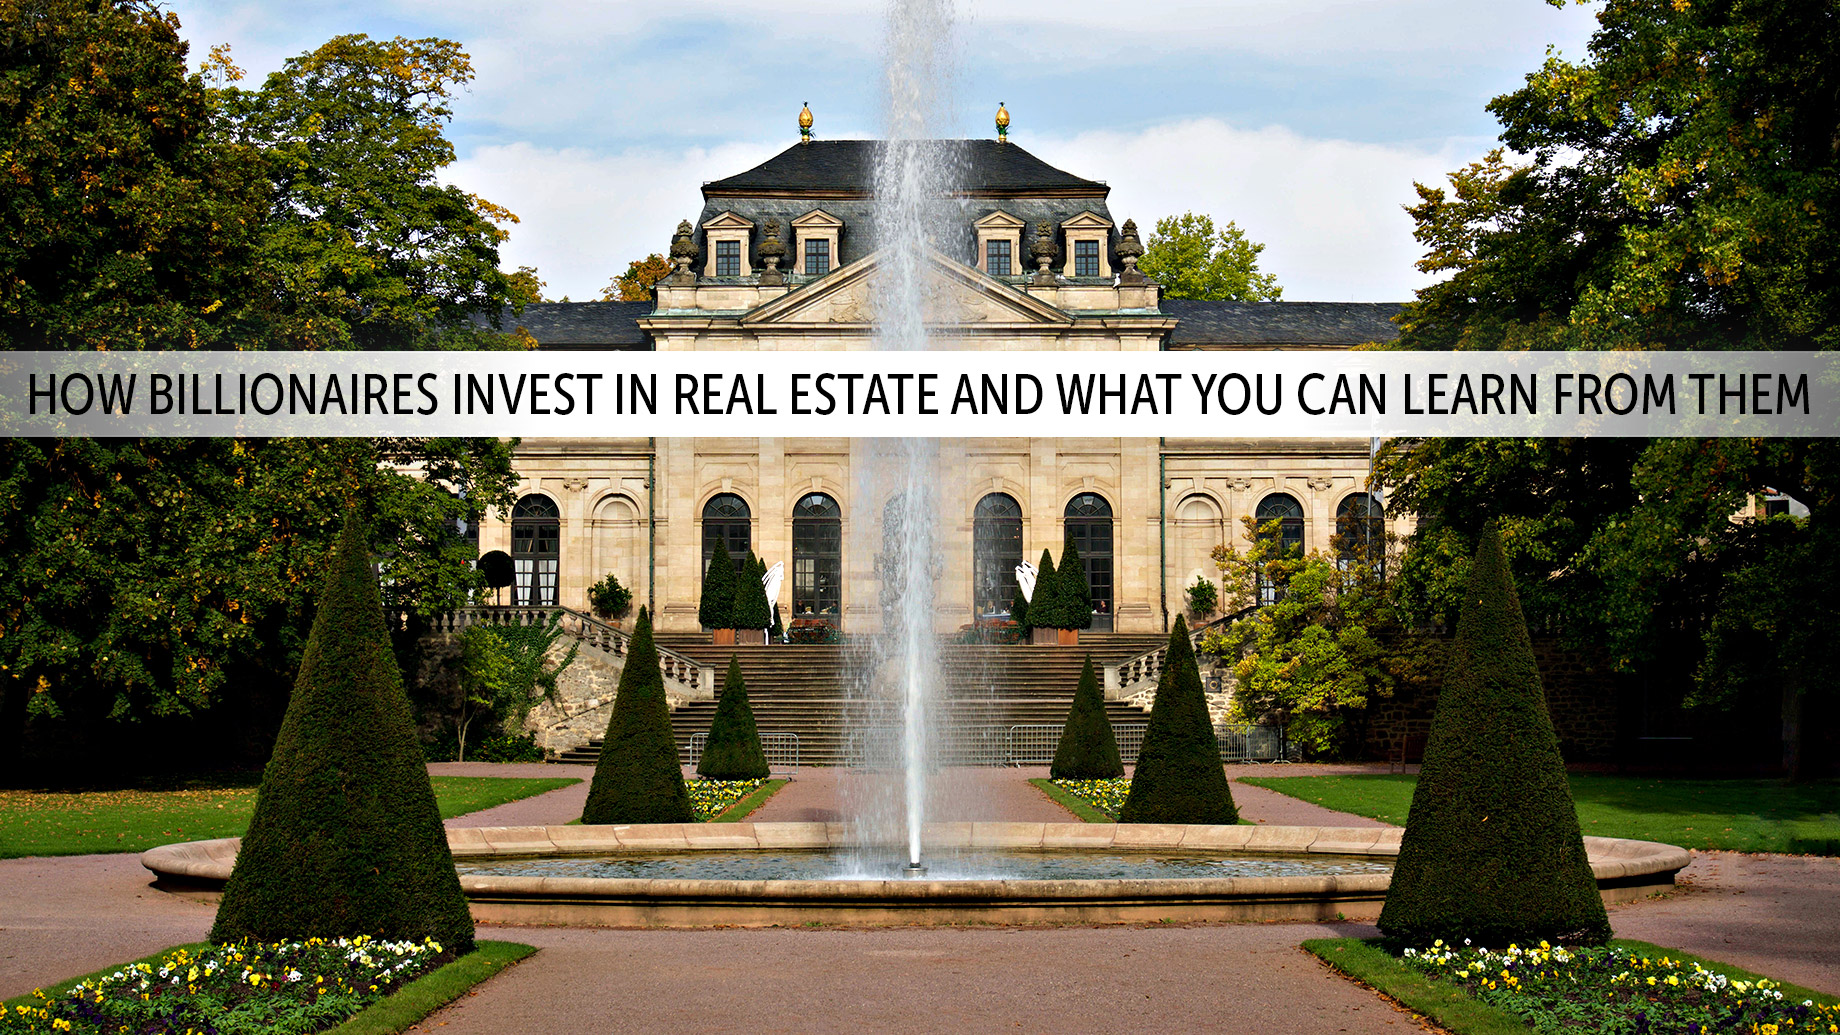 How Billionaires Invest in Real Estate and What You Can Learn from Them